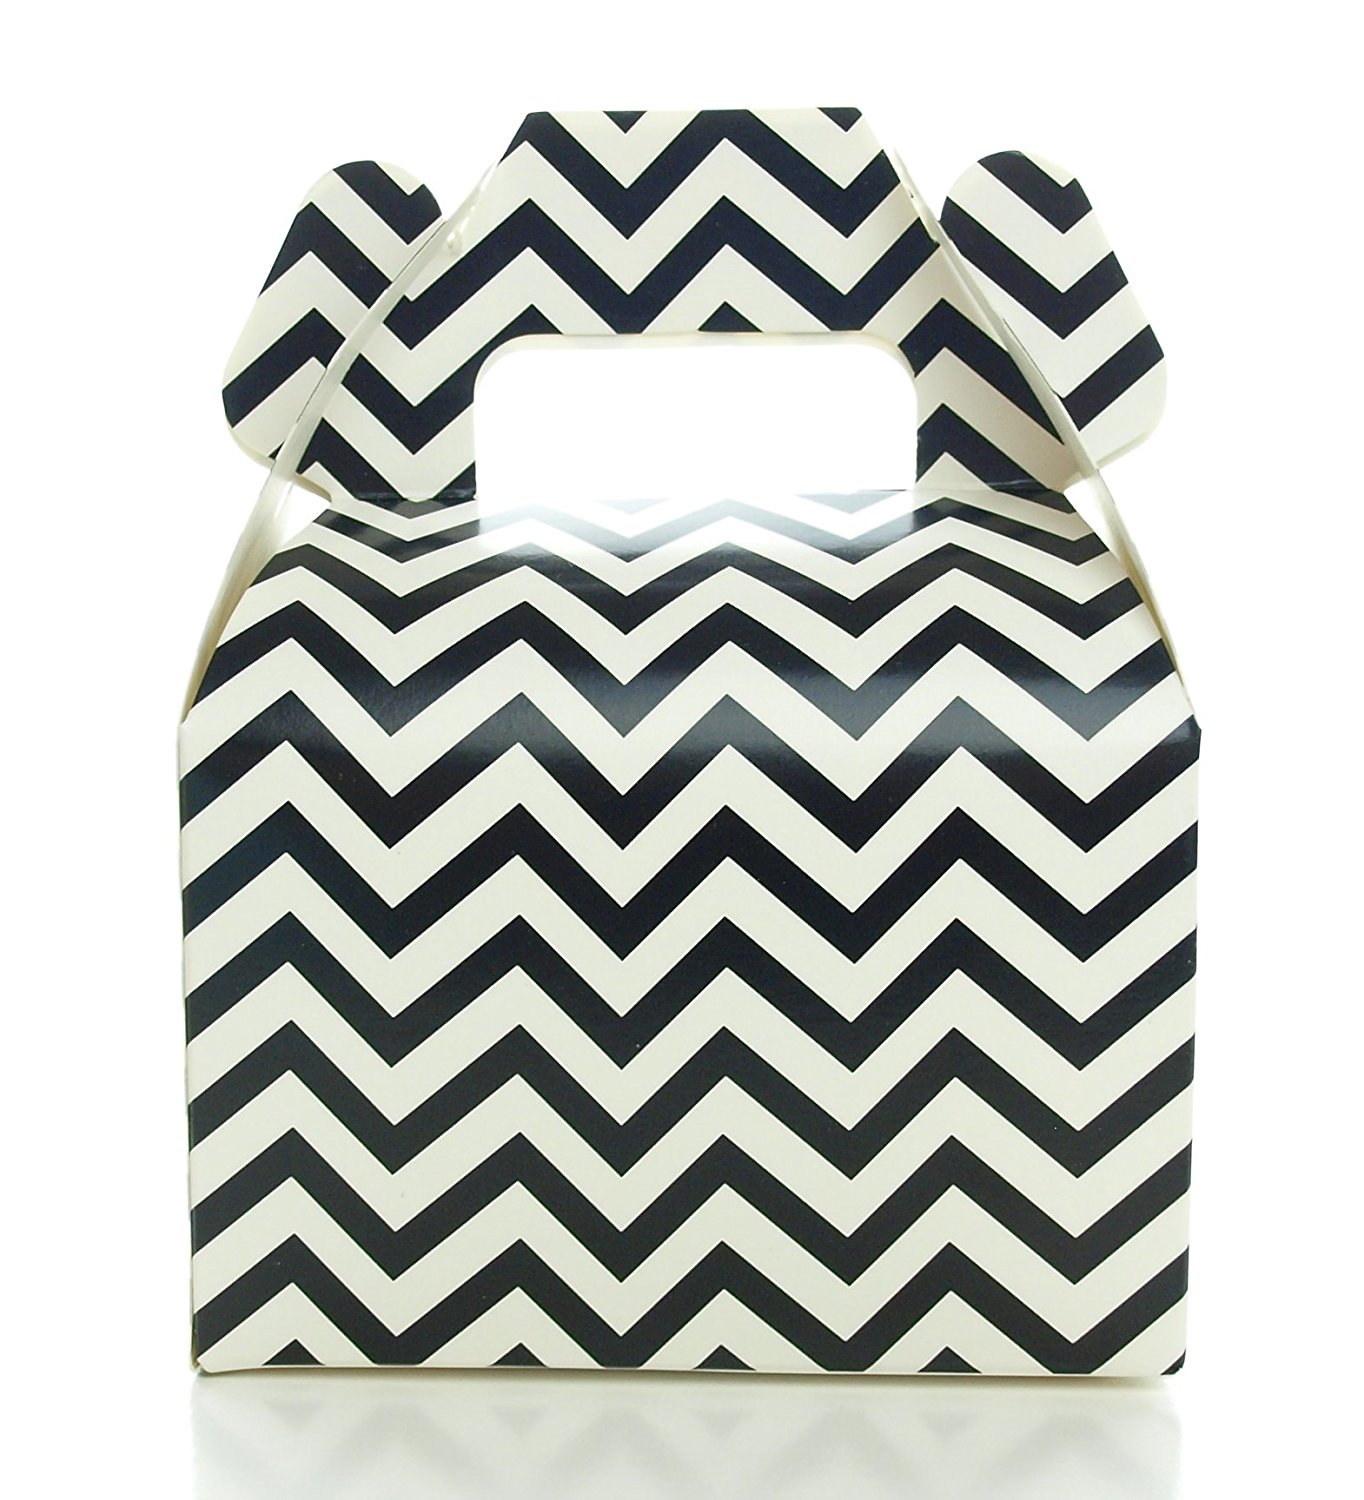 Black Candy Box, Mini Chevron Party Gift Boxes (12 Pack) - Black Birthday Party Supplies, Black Halloween Treat Boxes for Wedding Favors or Party Candy Favors